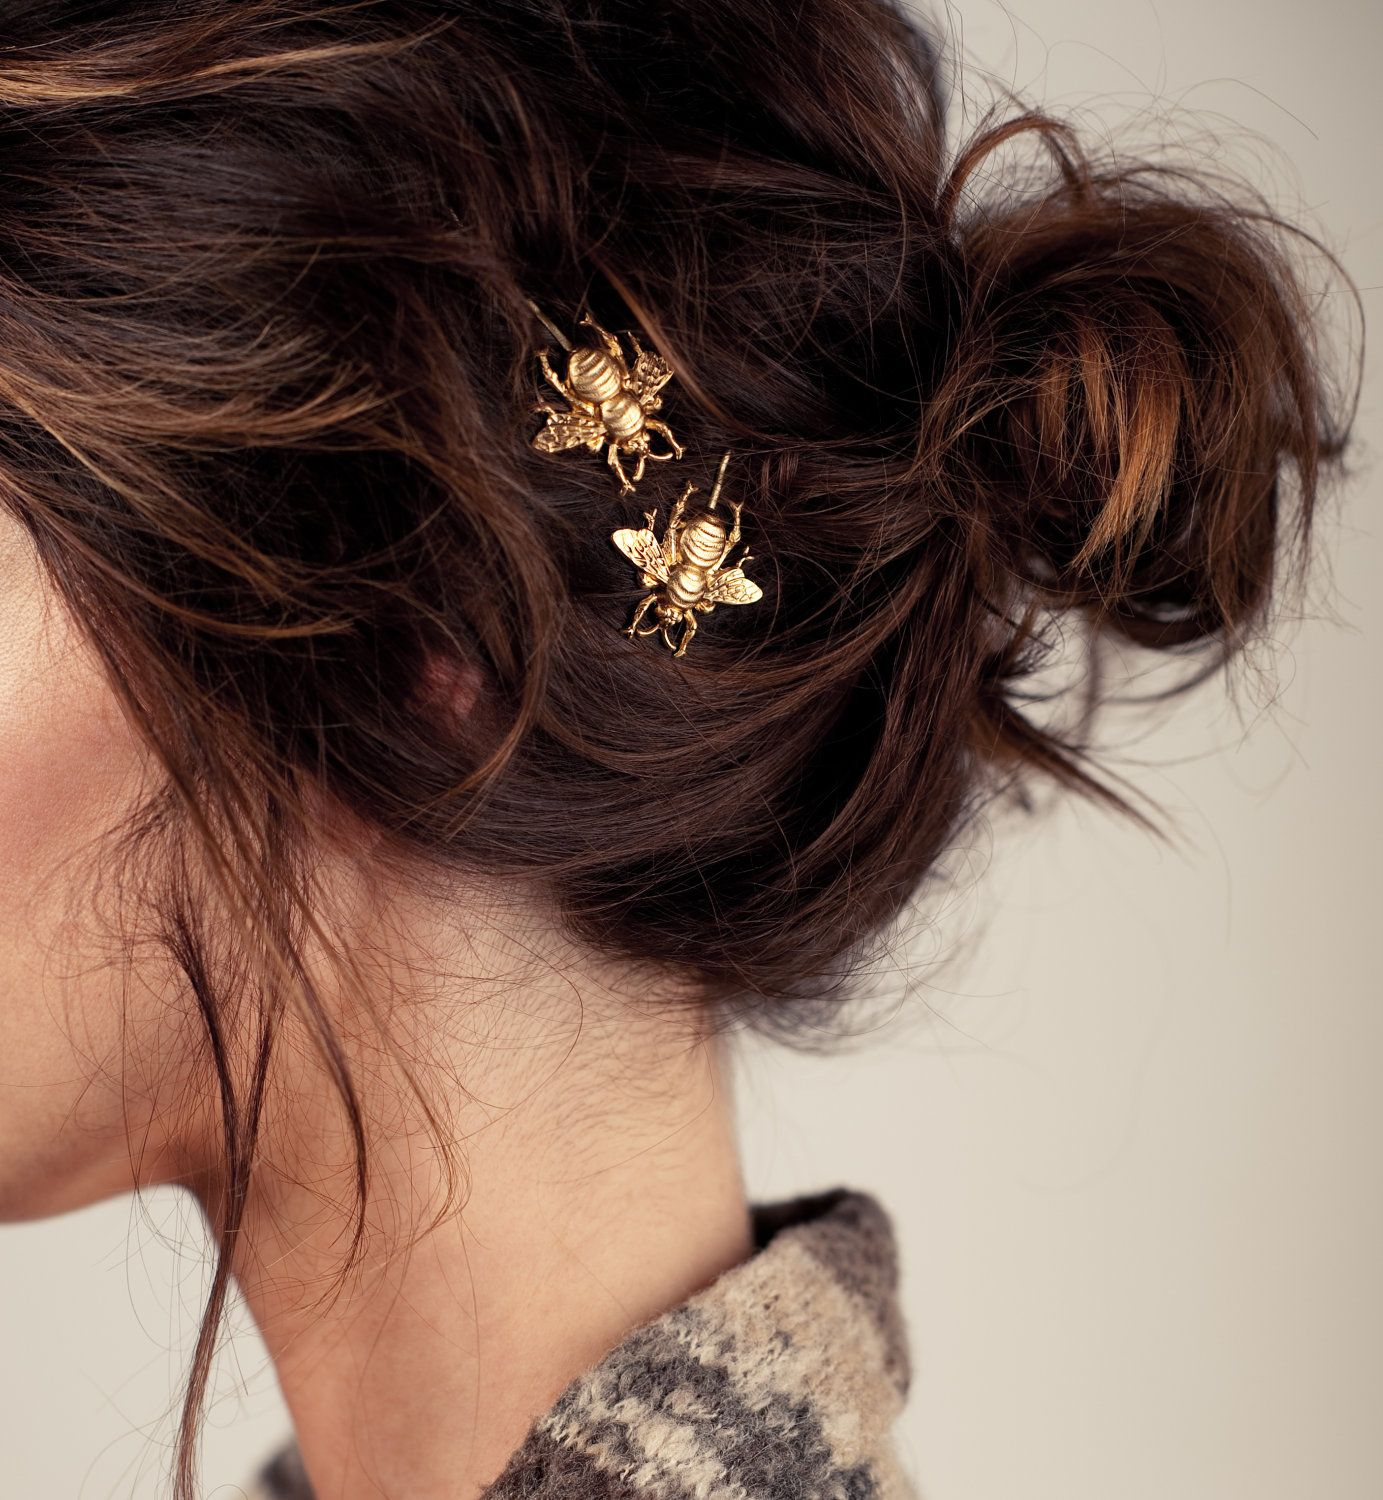 Golden bumble bee bobby pins perfectly at home nestled in a messy